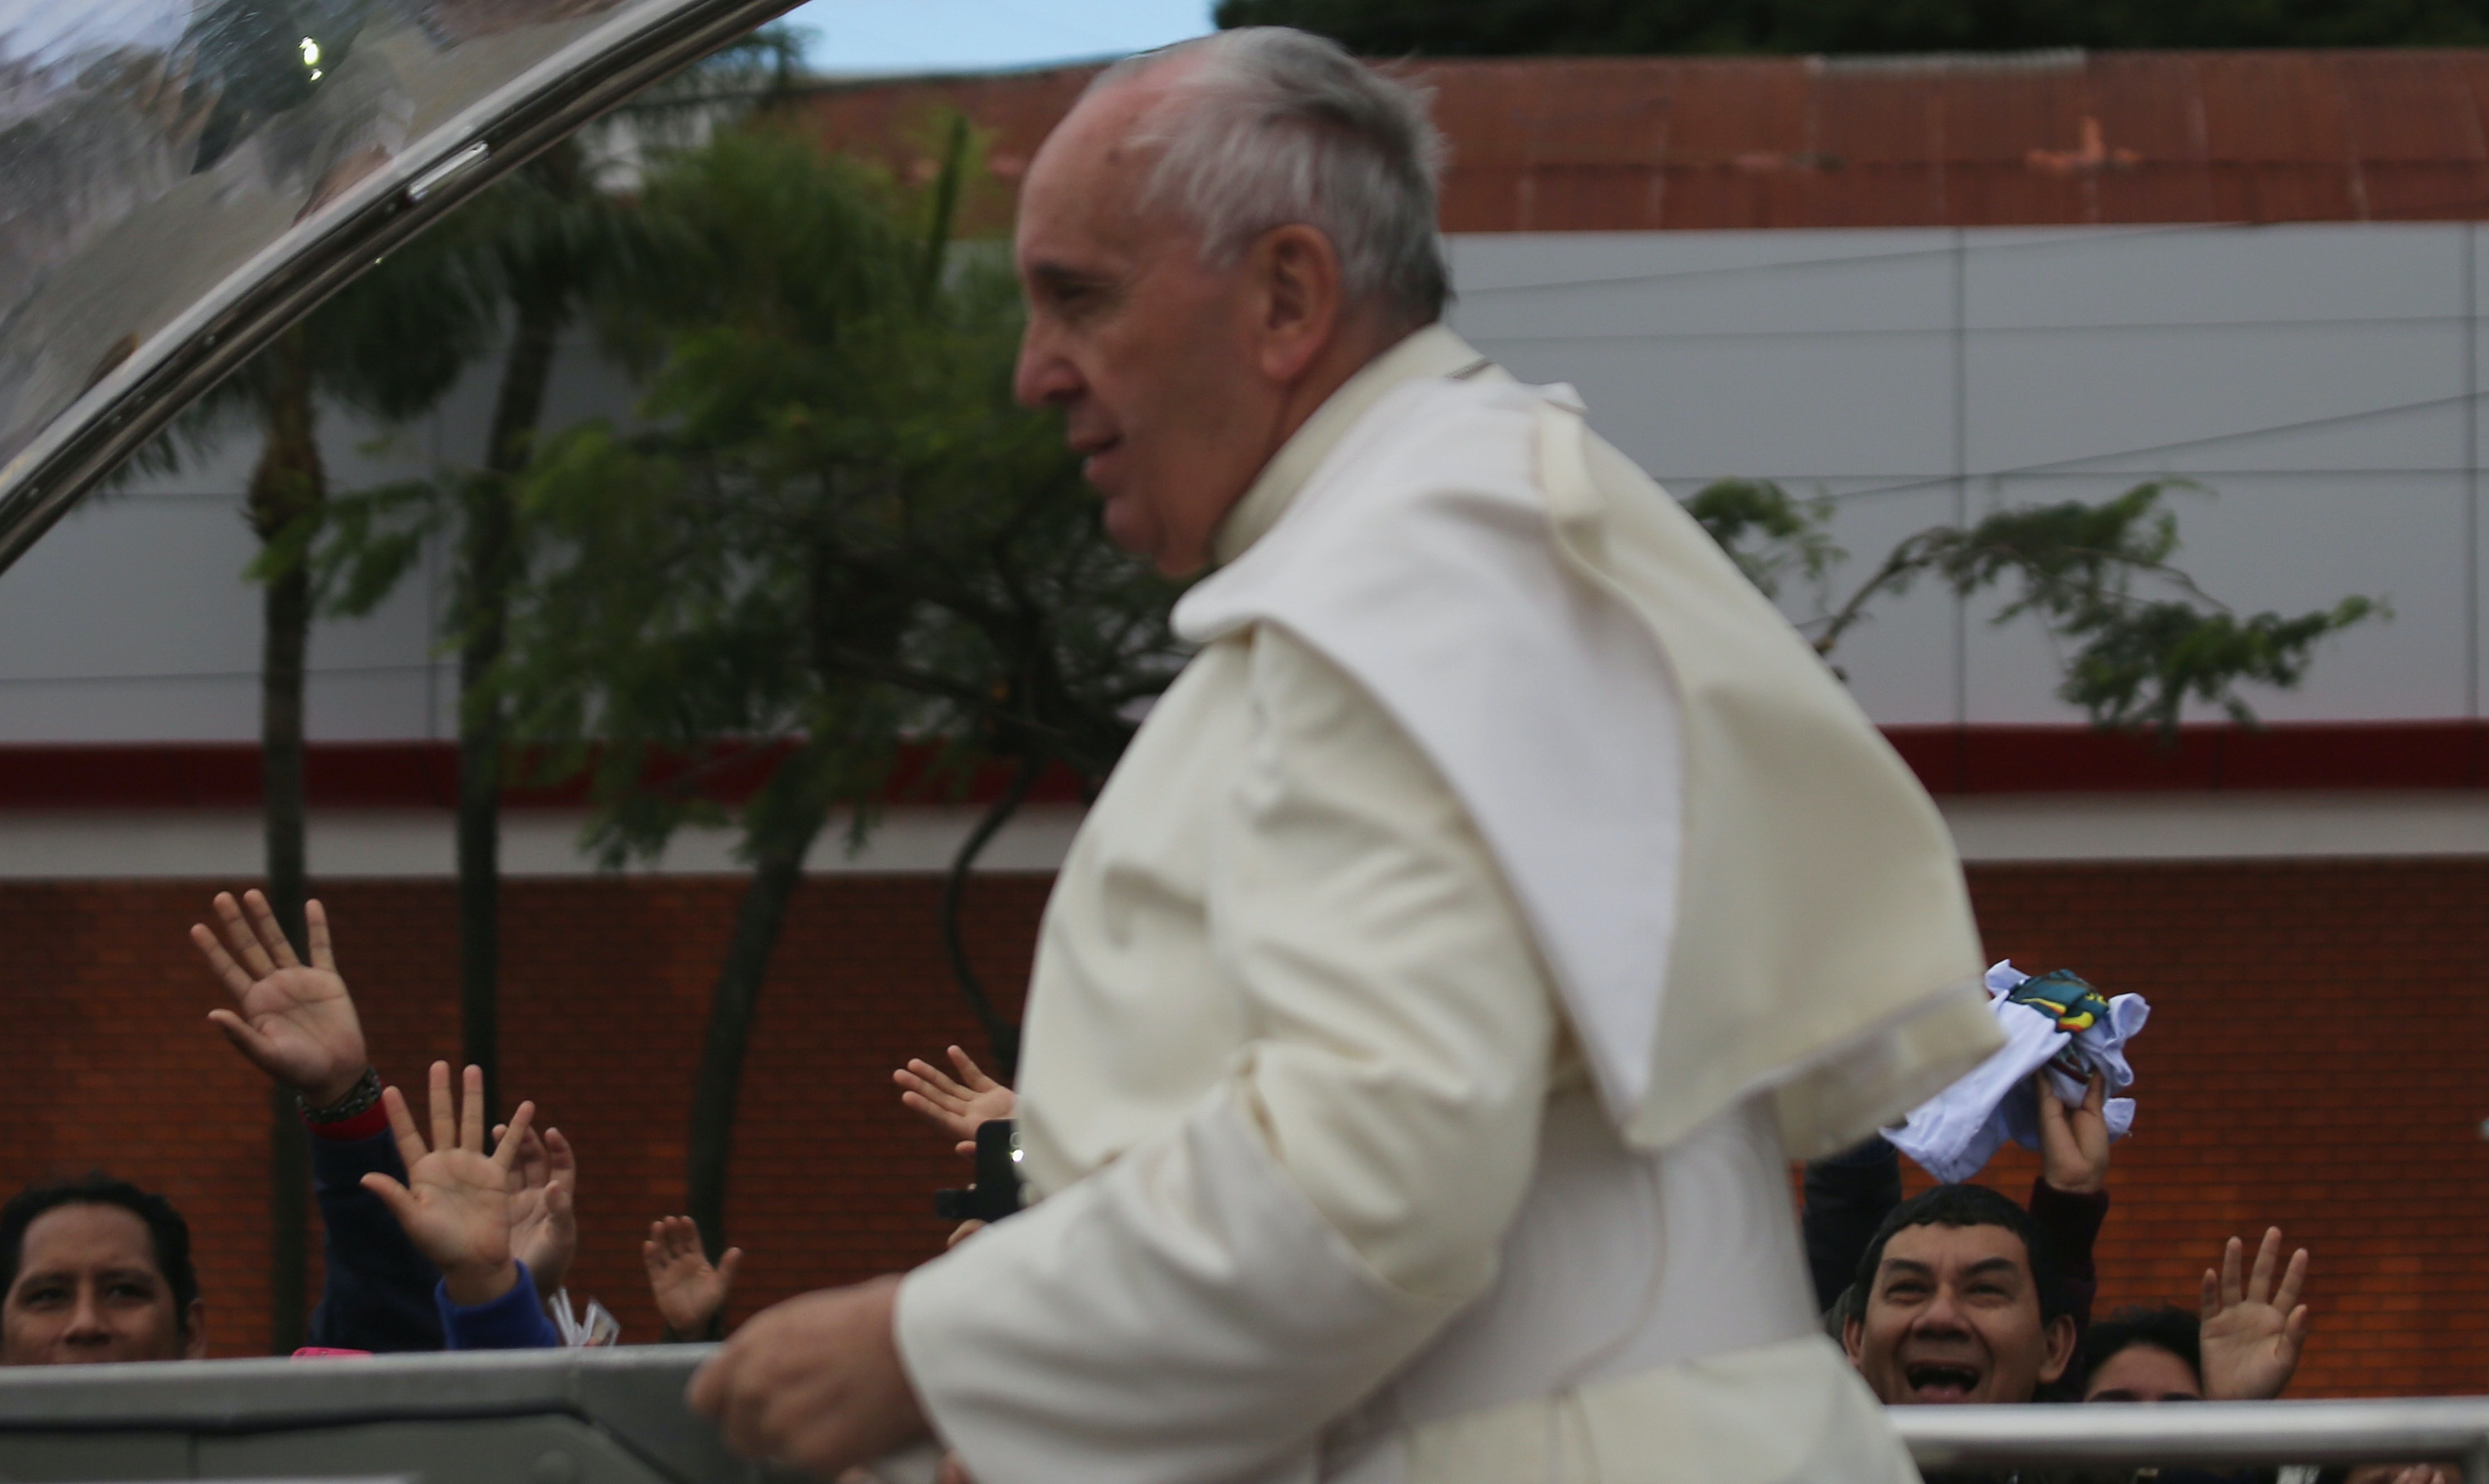 On a recent trip to Bolivia, Pope Francis openly requested coca leaf tea to treat altitude sickness.